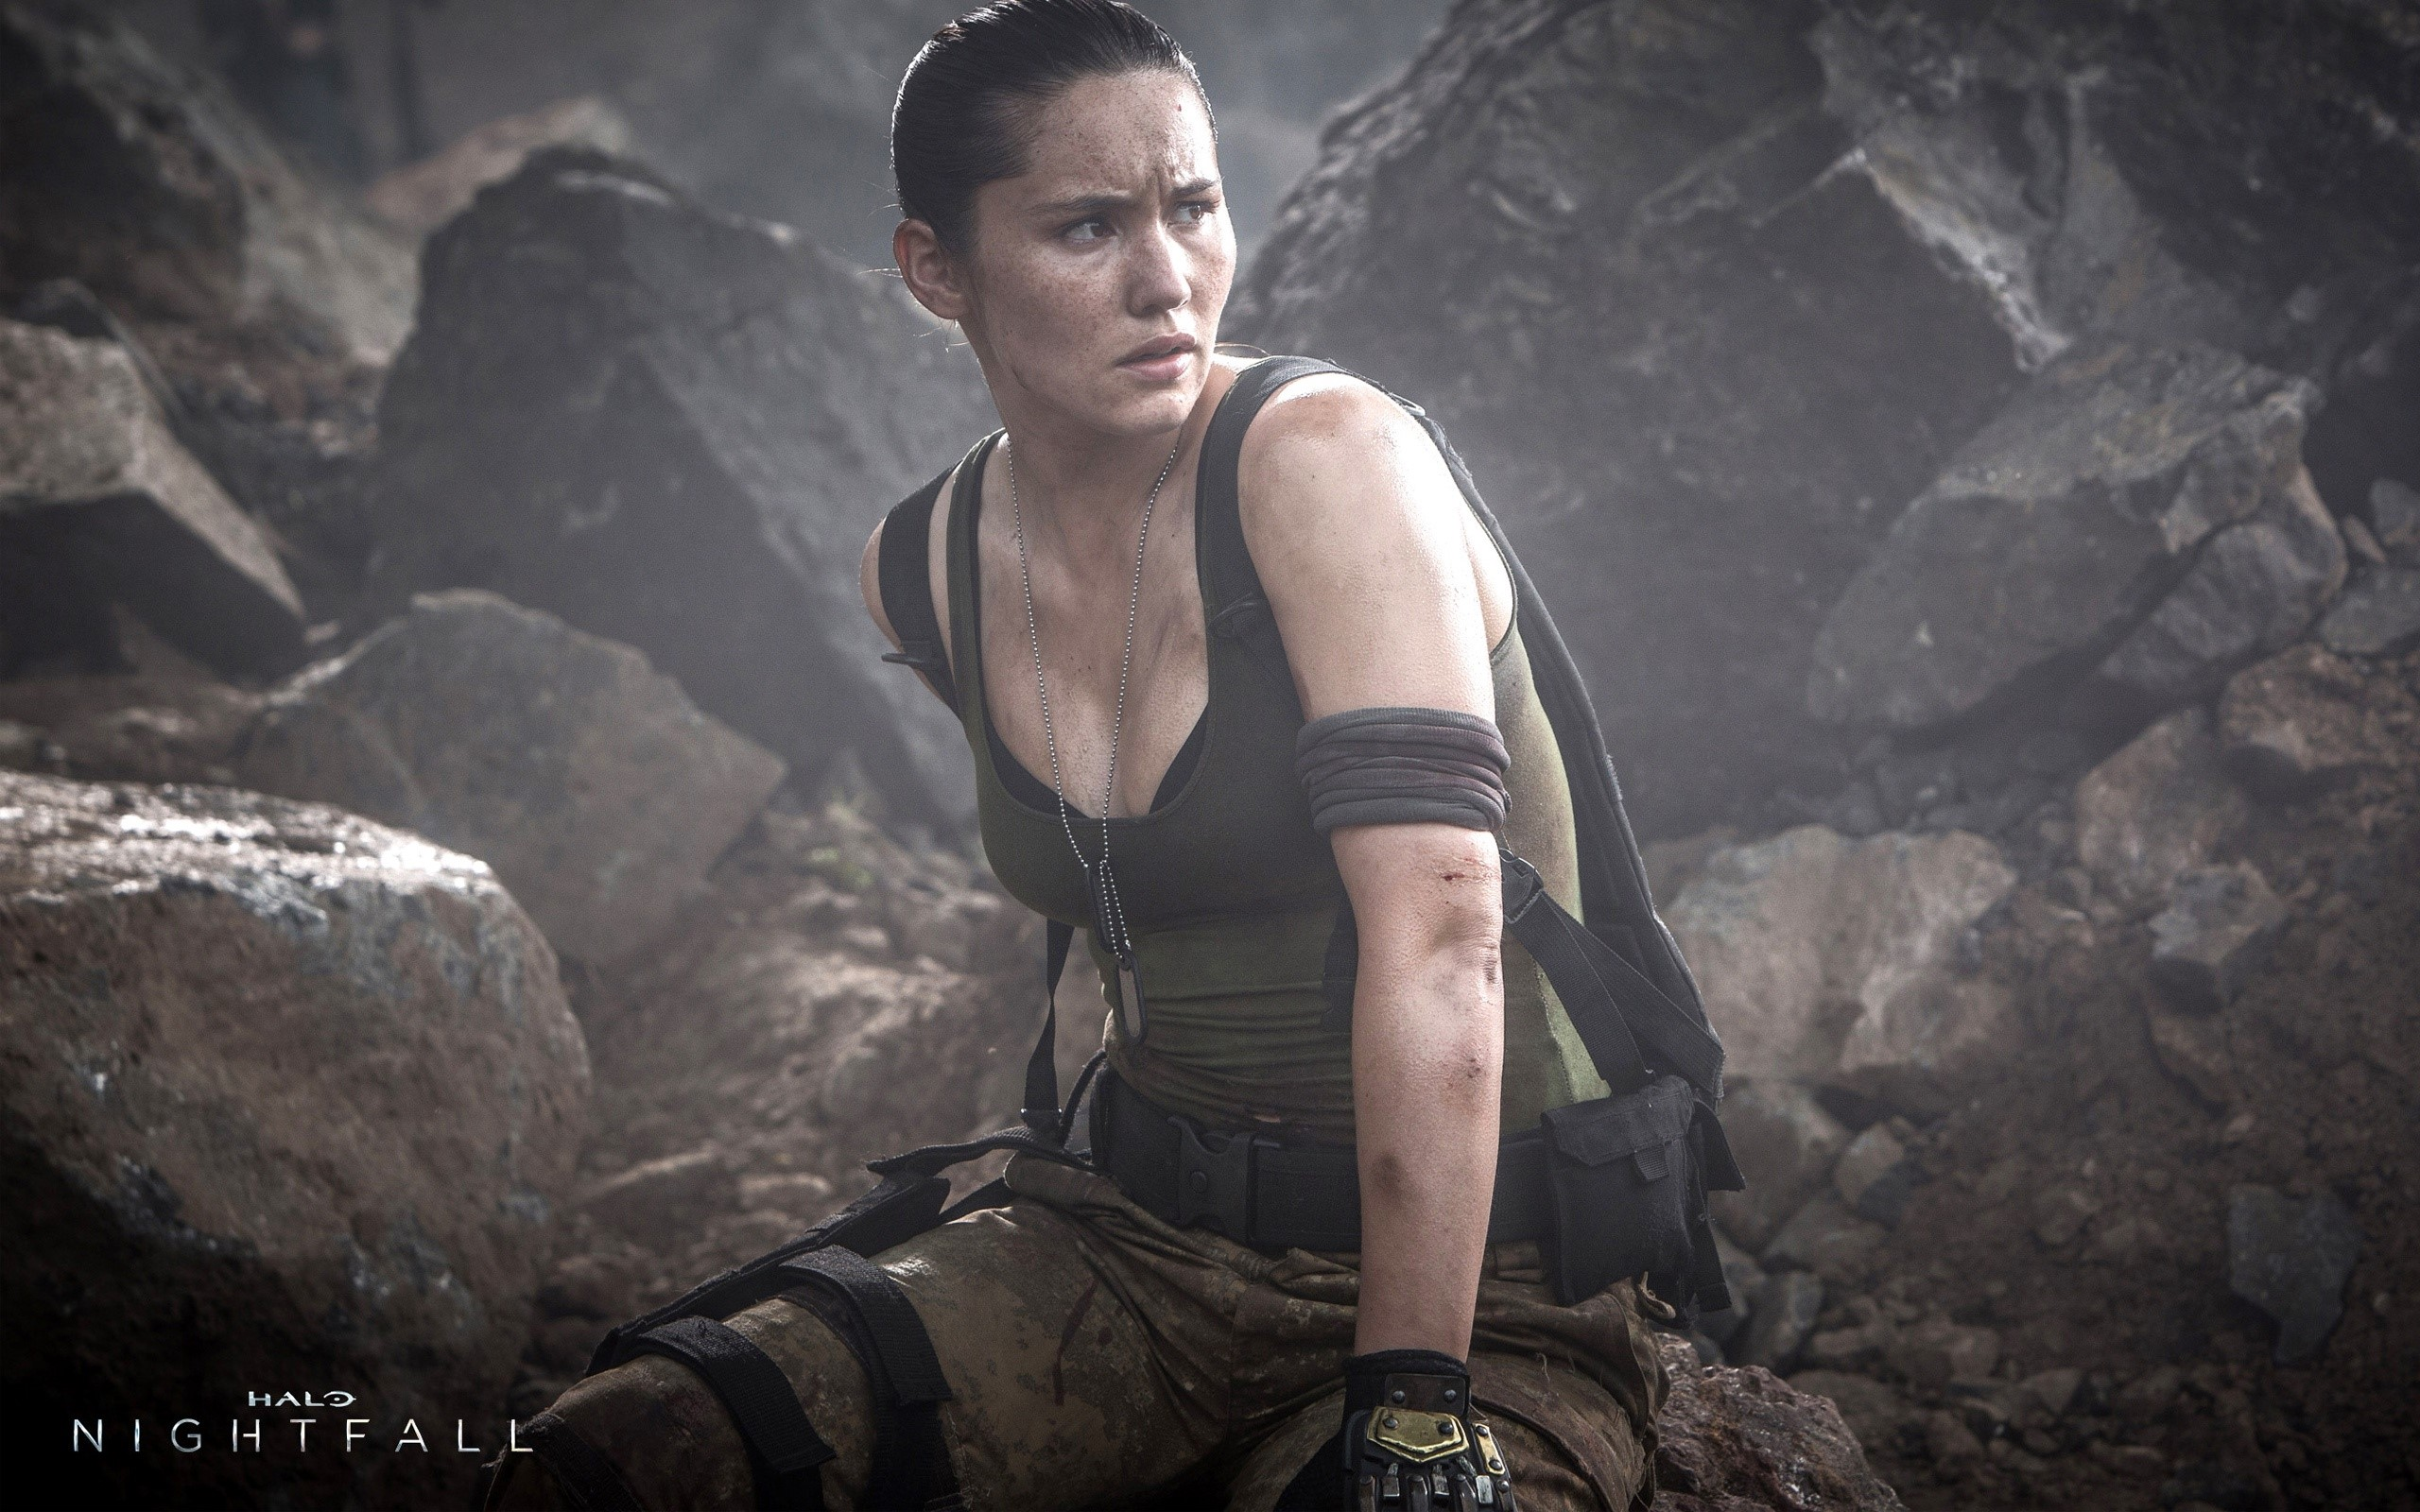 Wallpaper Christina Chong as Macer in Halo Nightfall